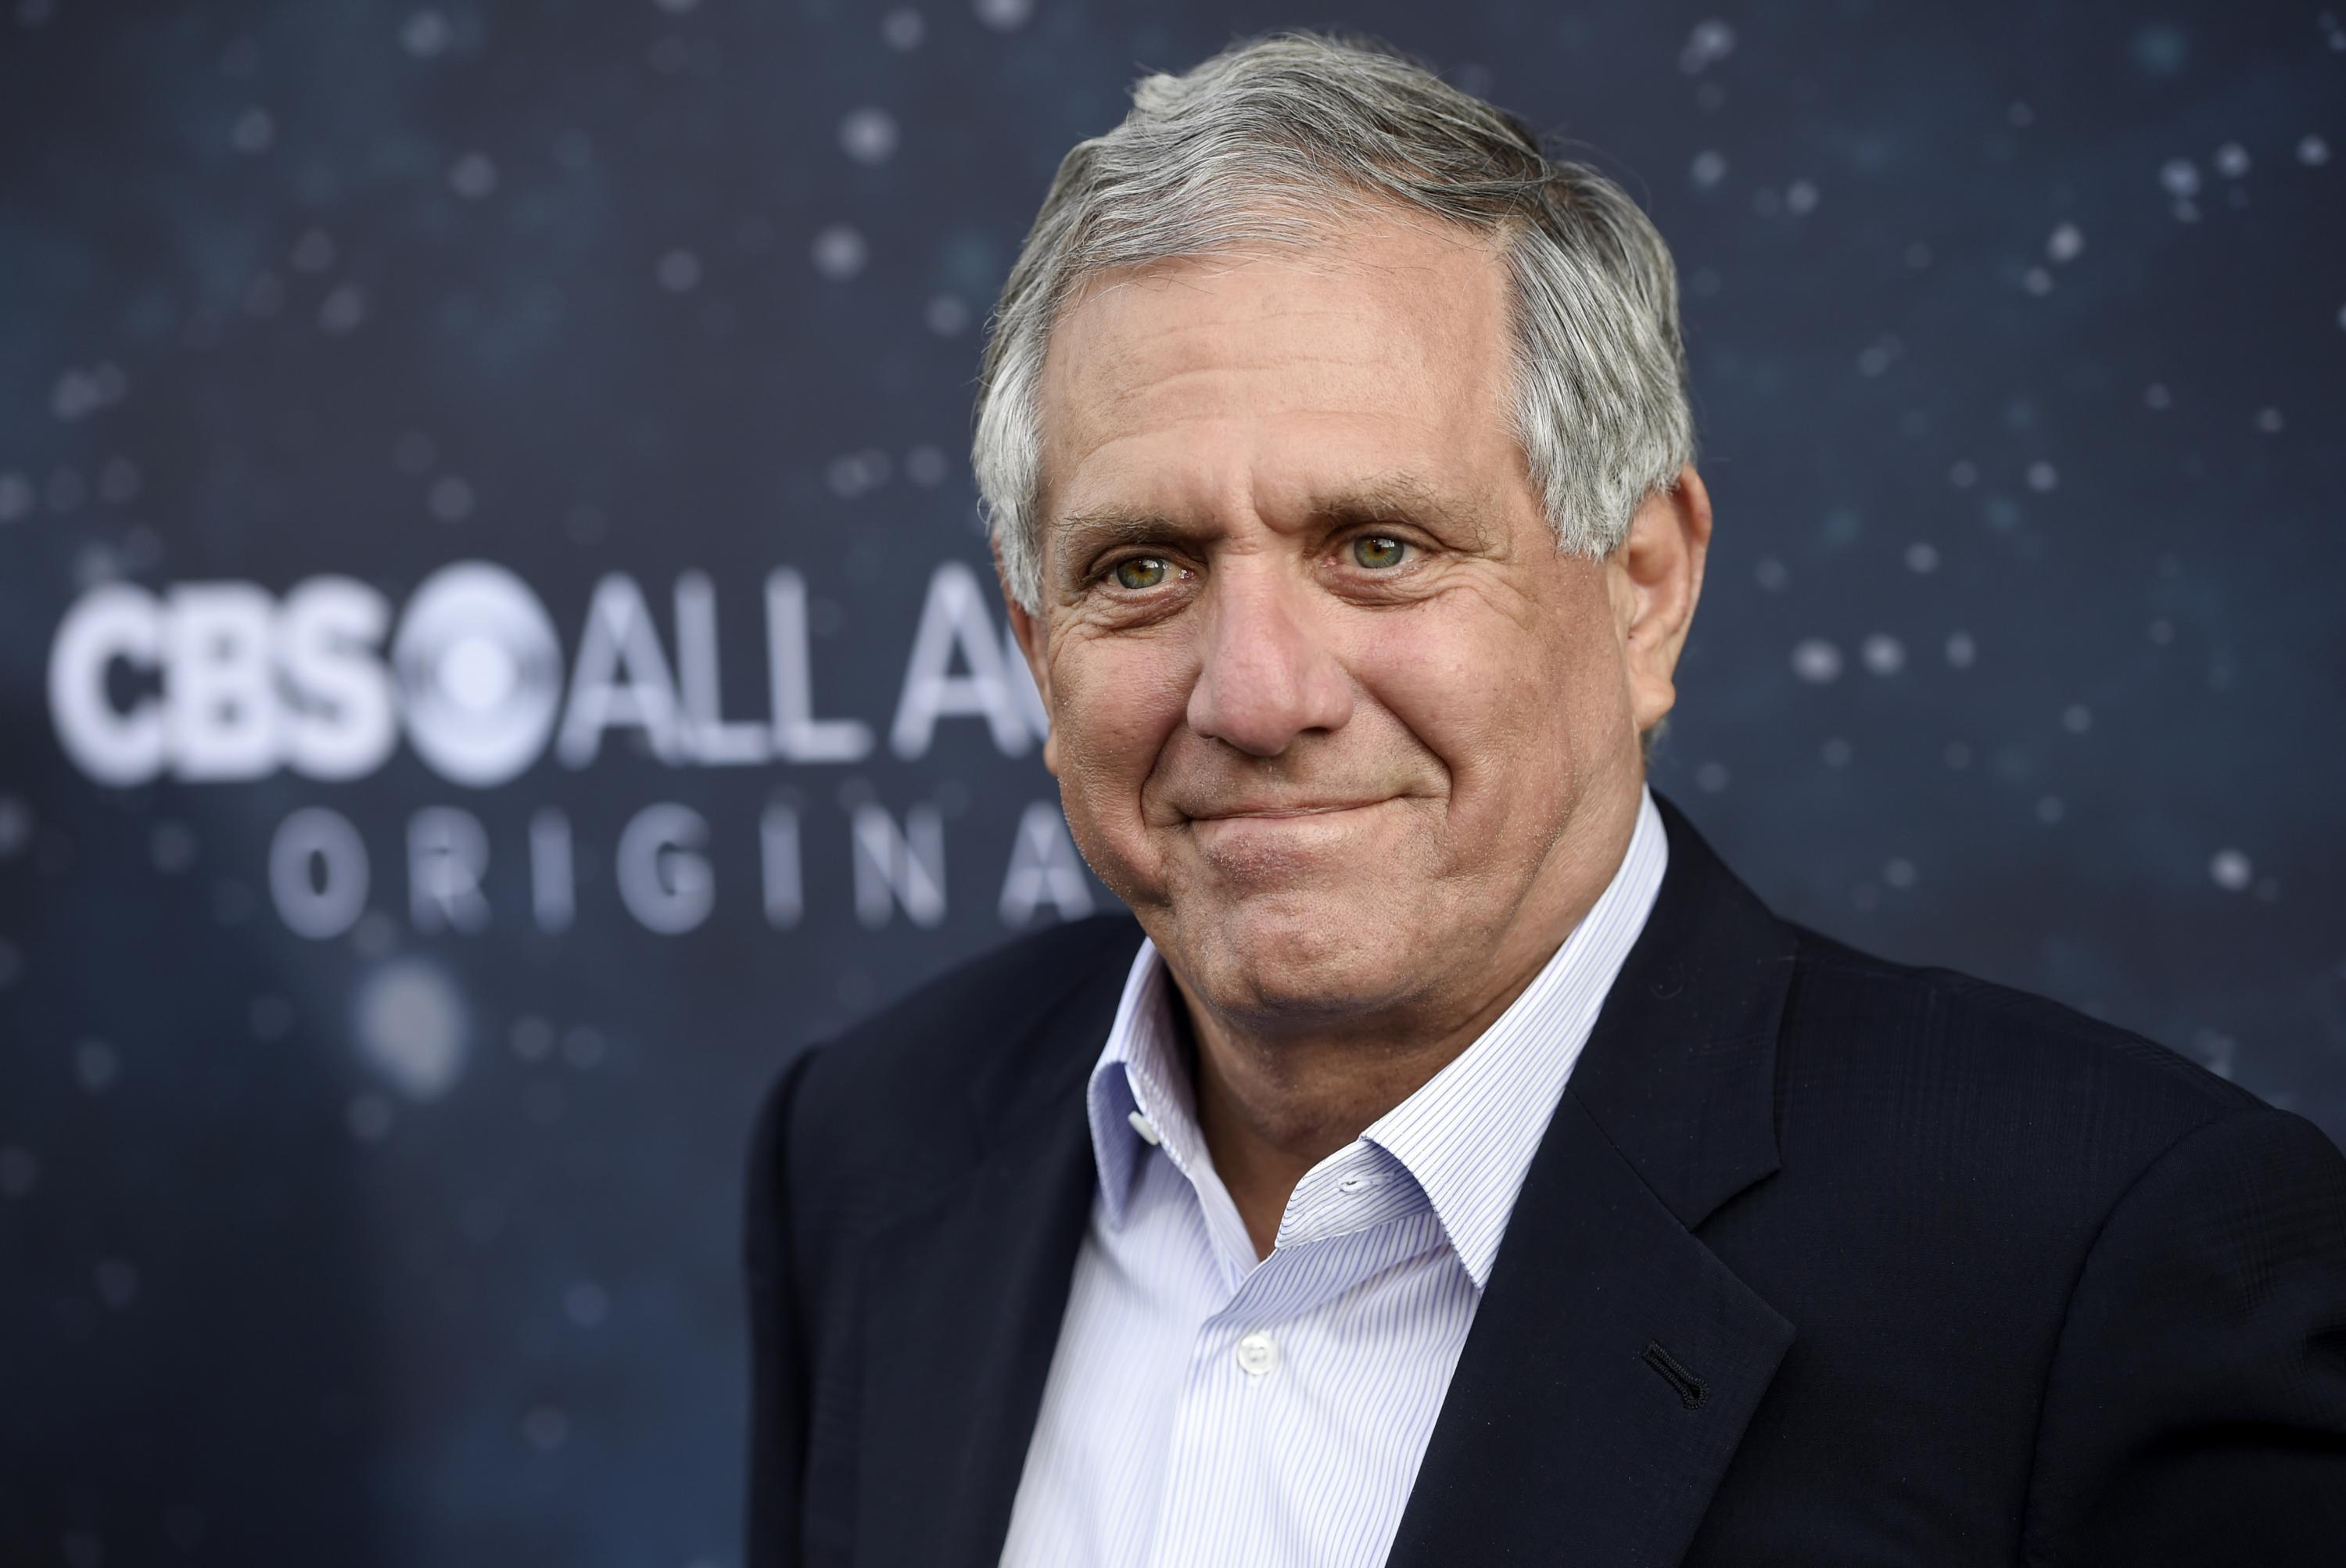 CBS stock price sinking on Les Moonves report about sexual misconduct pics